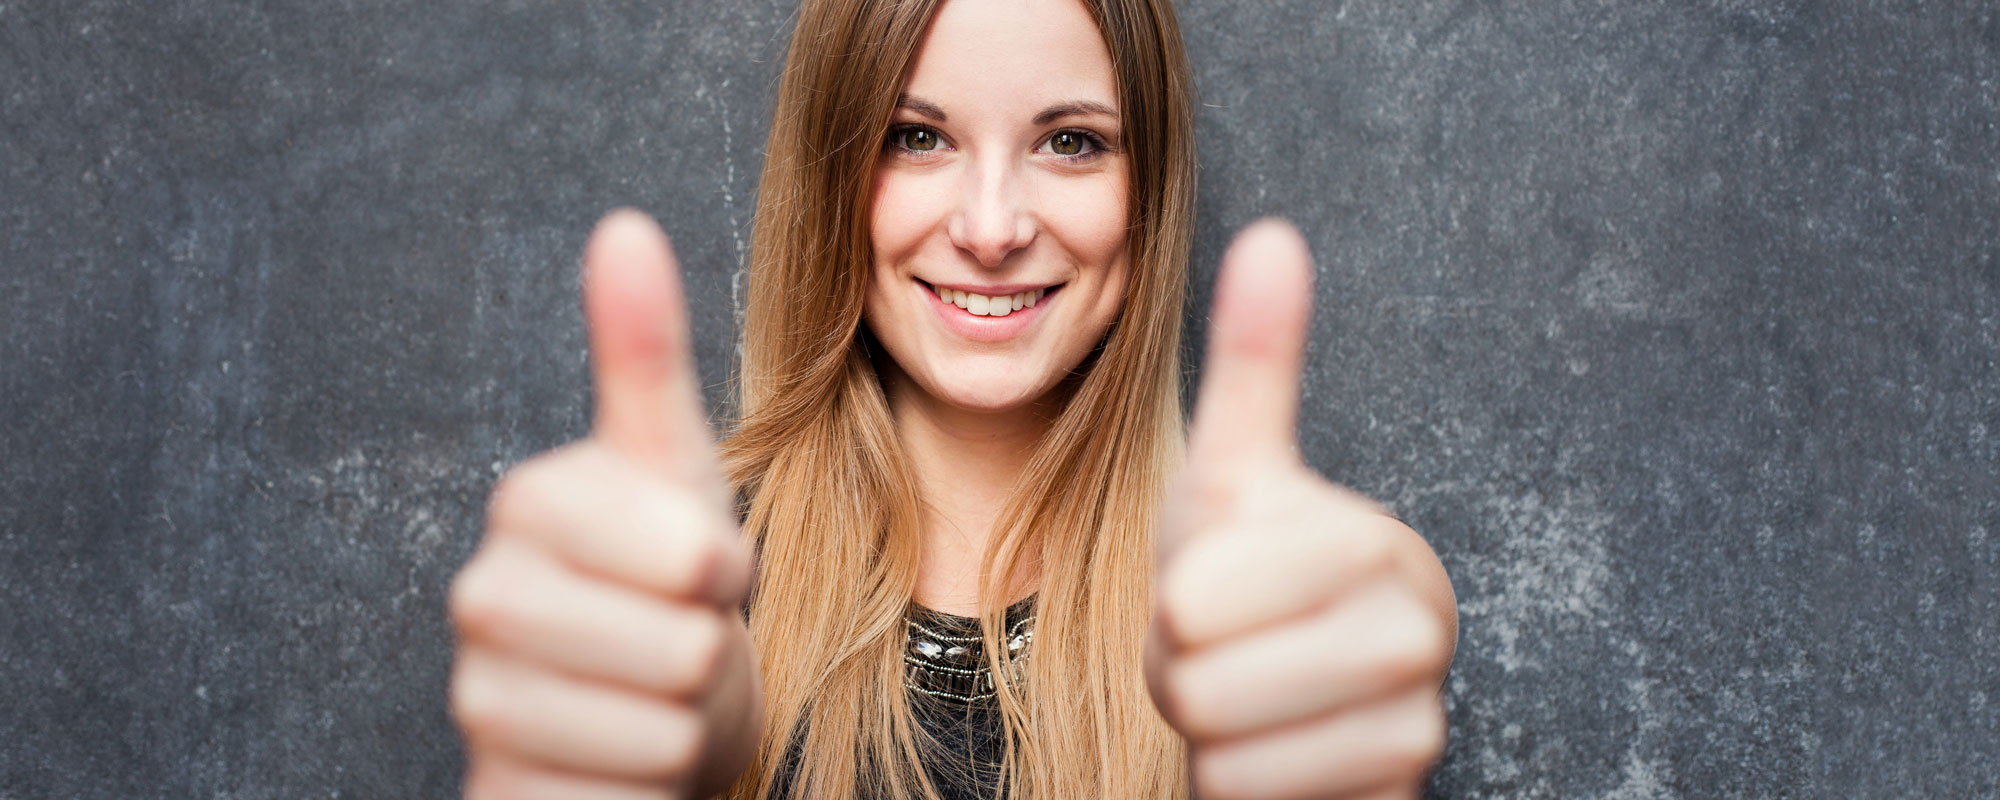 ls-recommend-thumbs-up-1